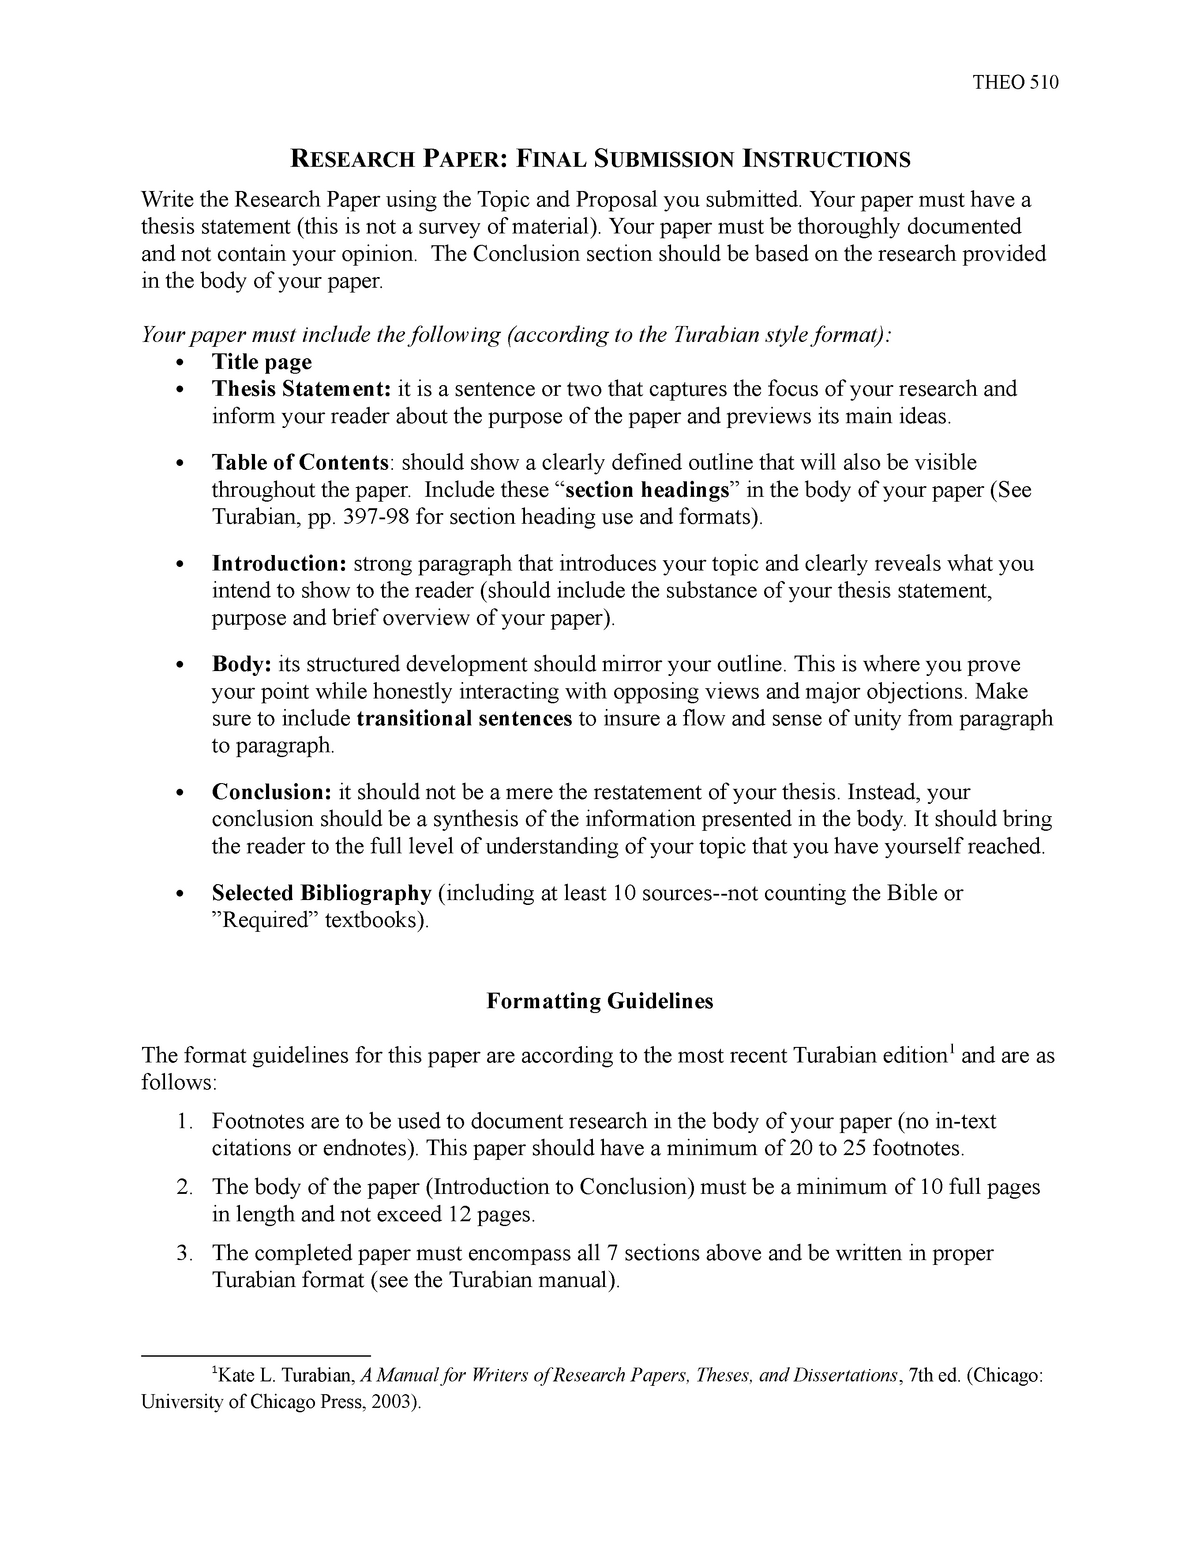 Being A College Student Essay  Page Essay also Dissertation Layout Paco Research Paper Final Submission  Paco   Lu  Studocu Sexual Assault Essays